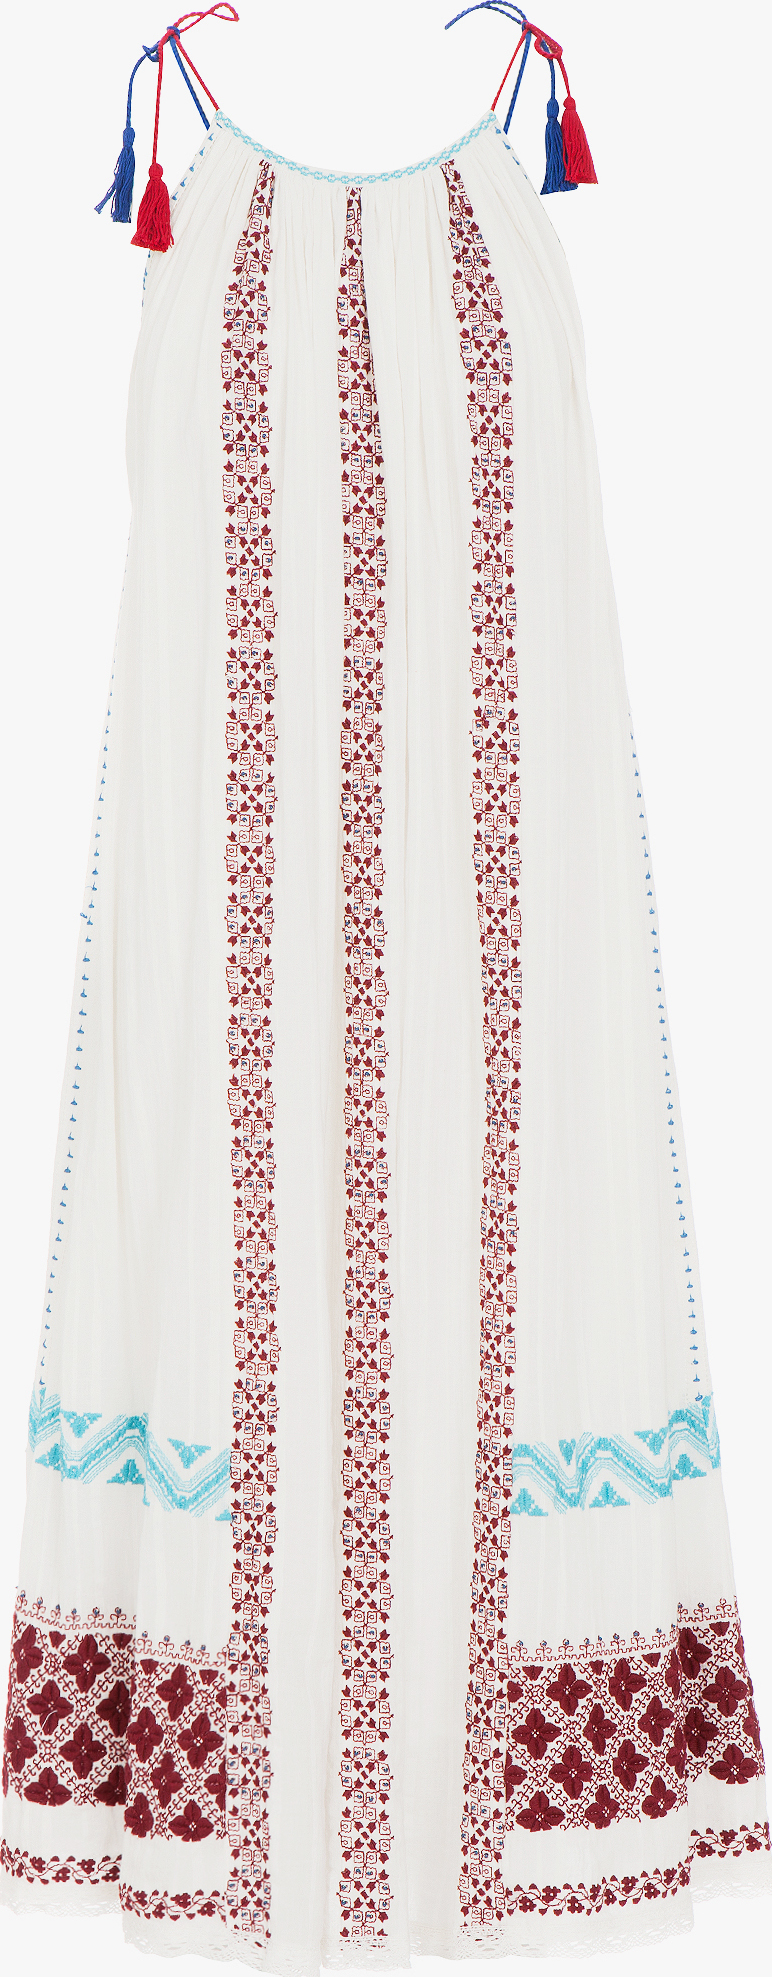 Ulla Johnson Siran Dress. Loit. $495.